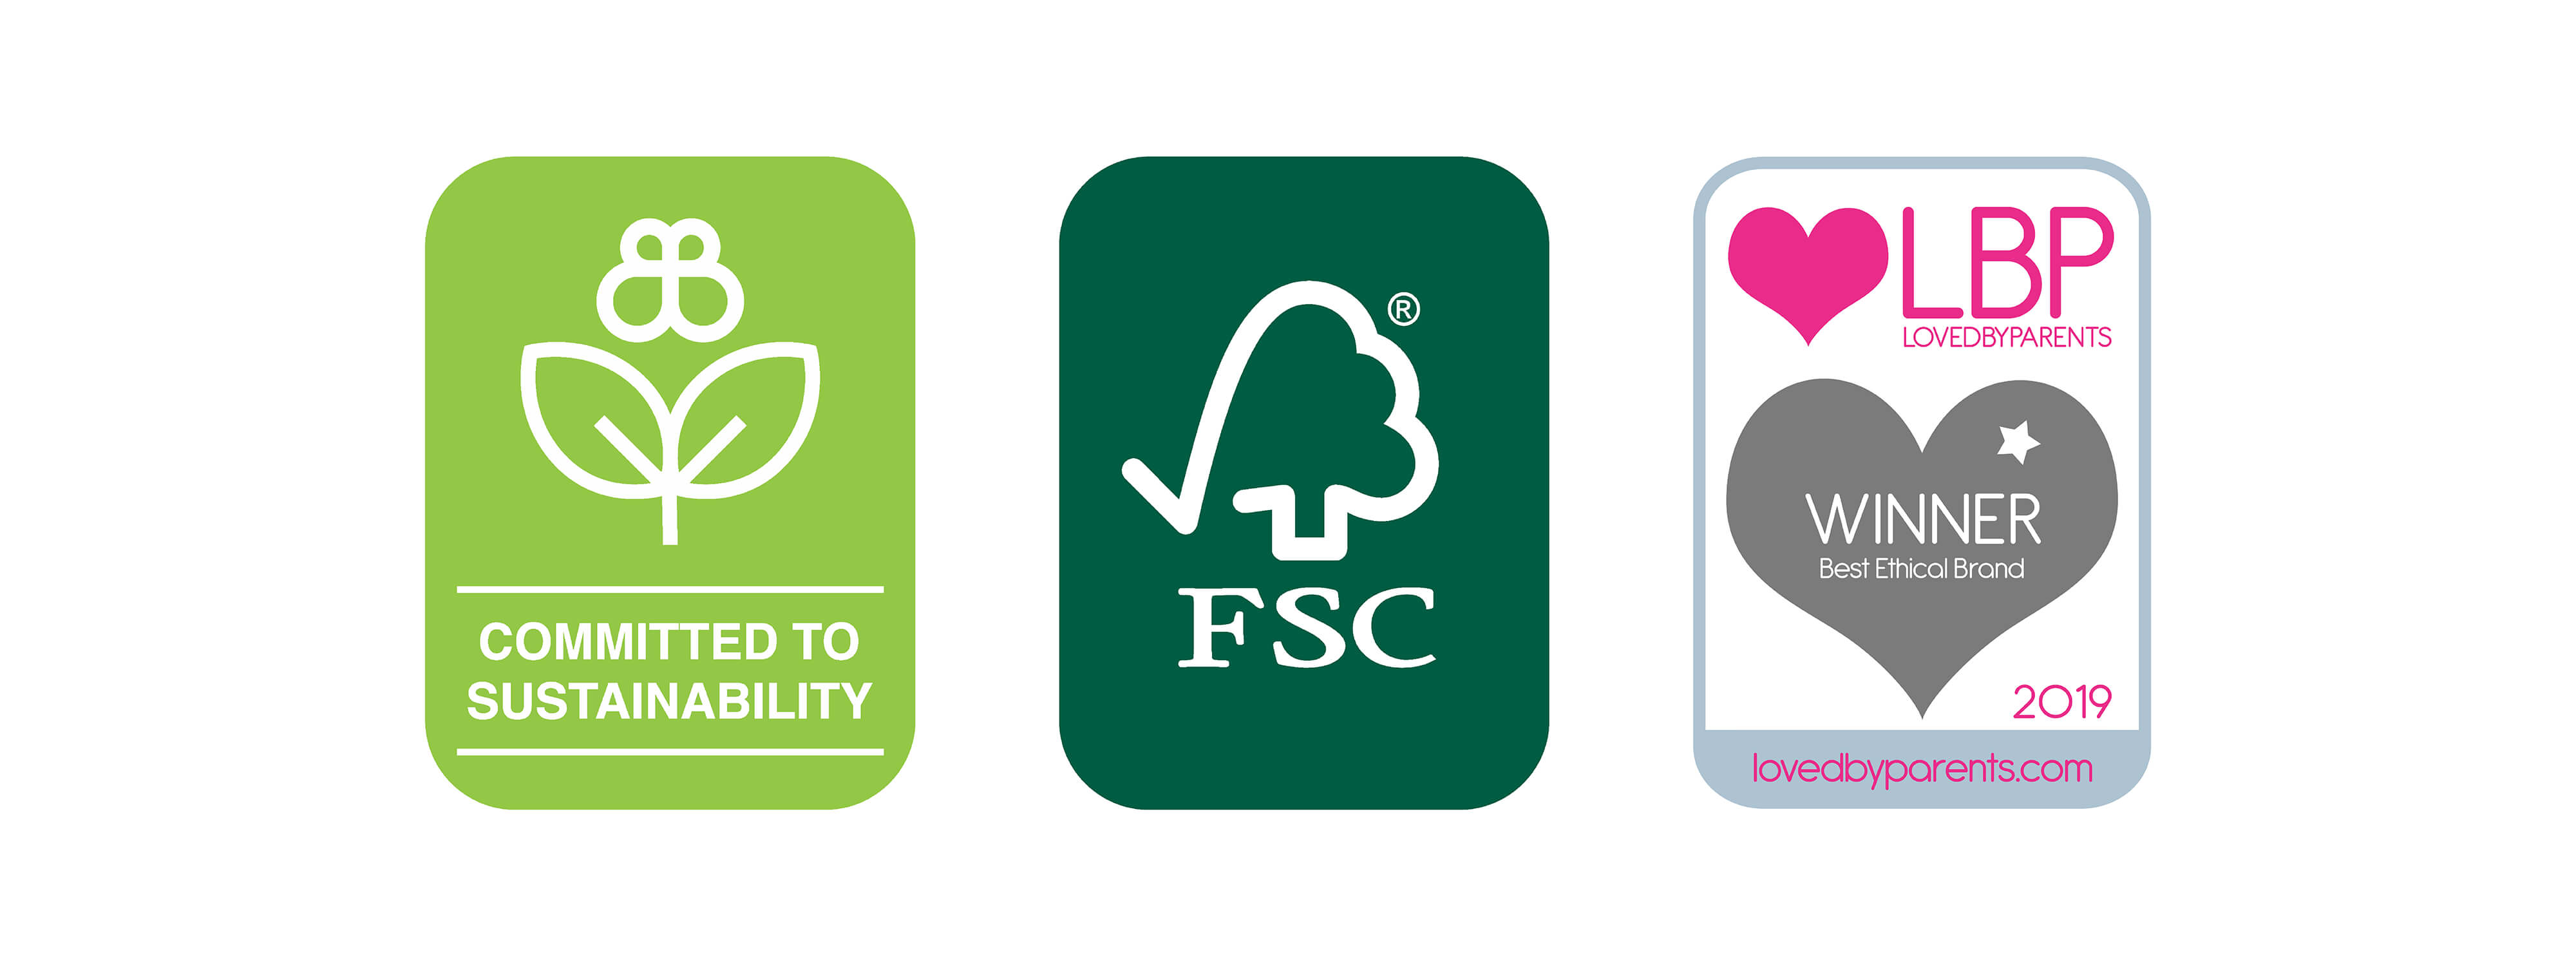 Committed to Sustainability, FSC Certified and LBP Winner 2019